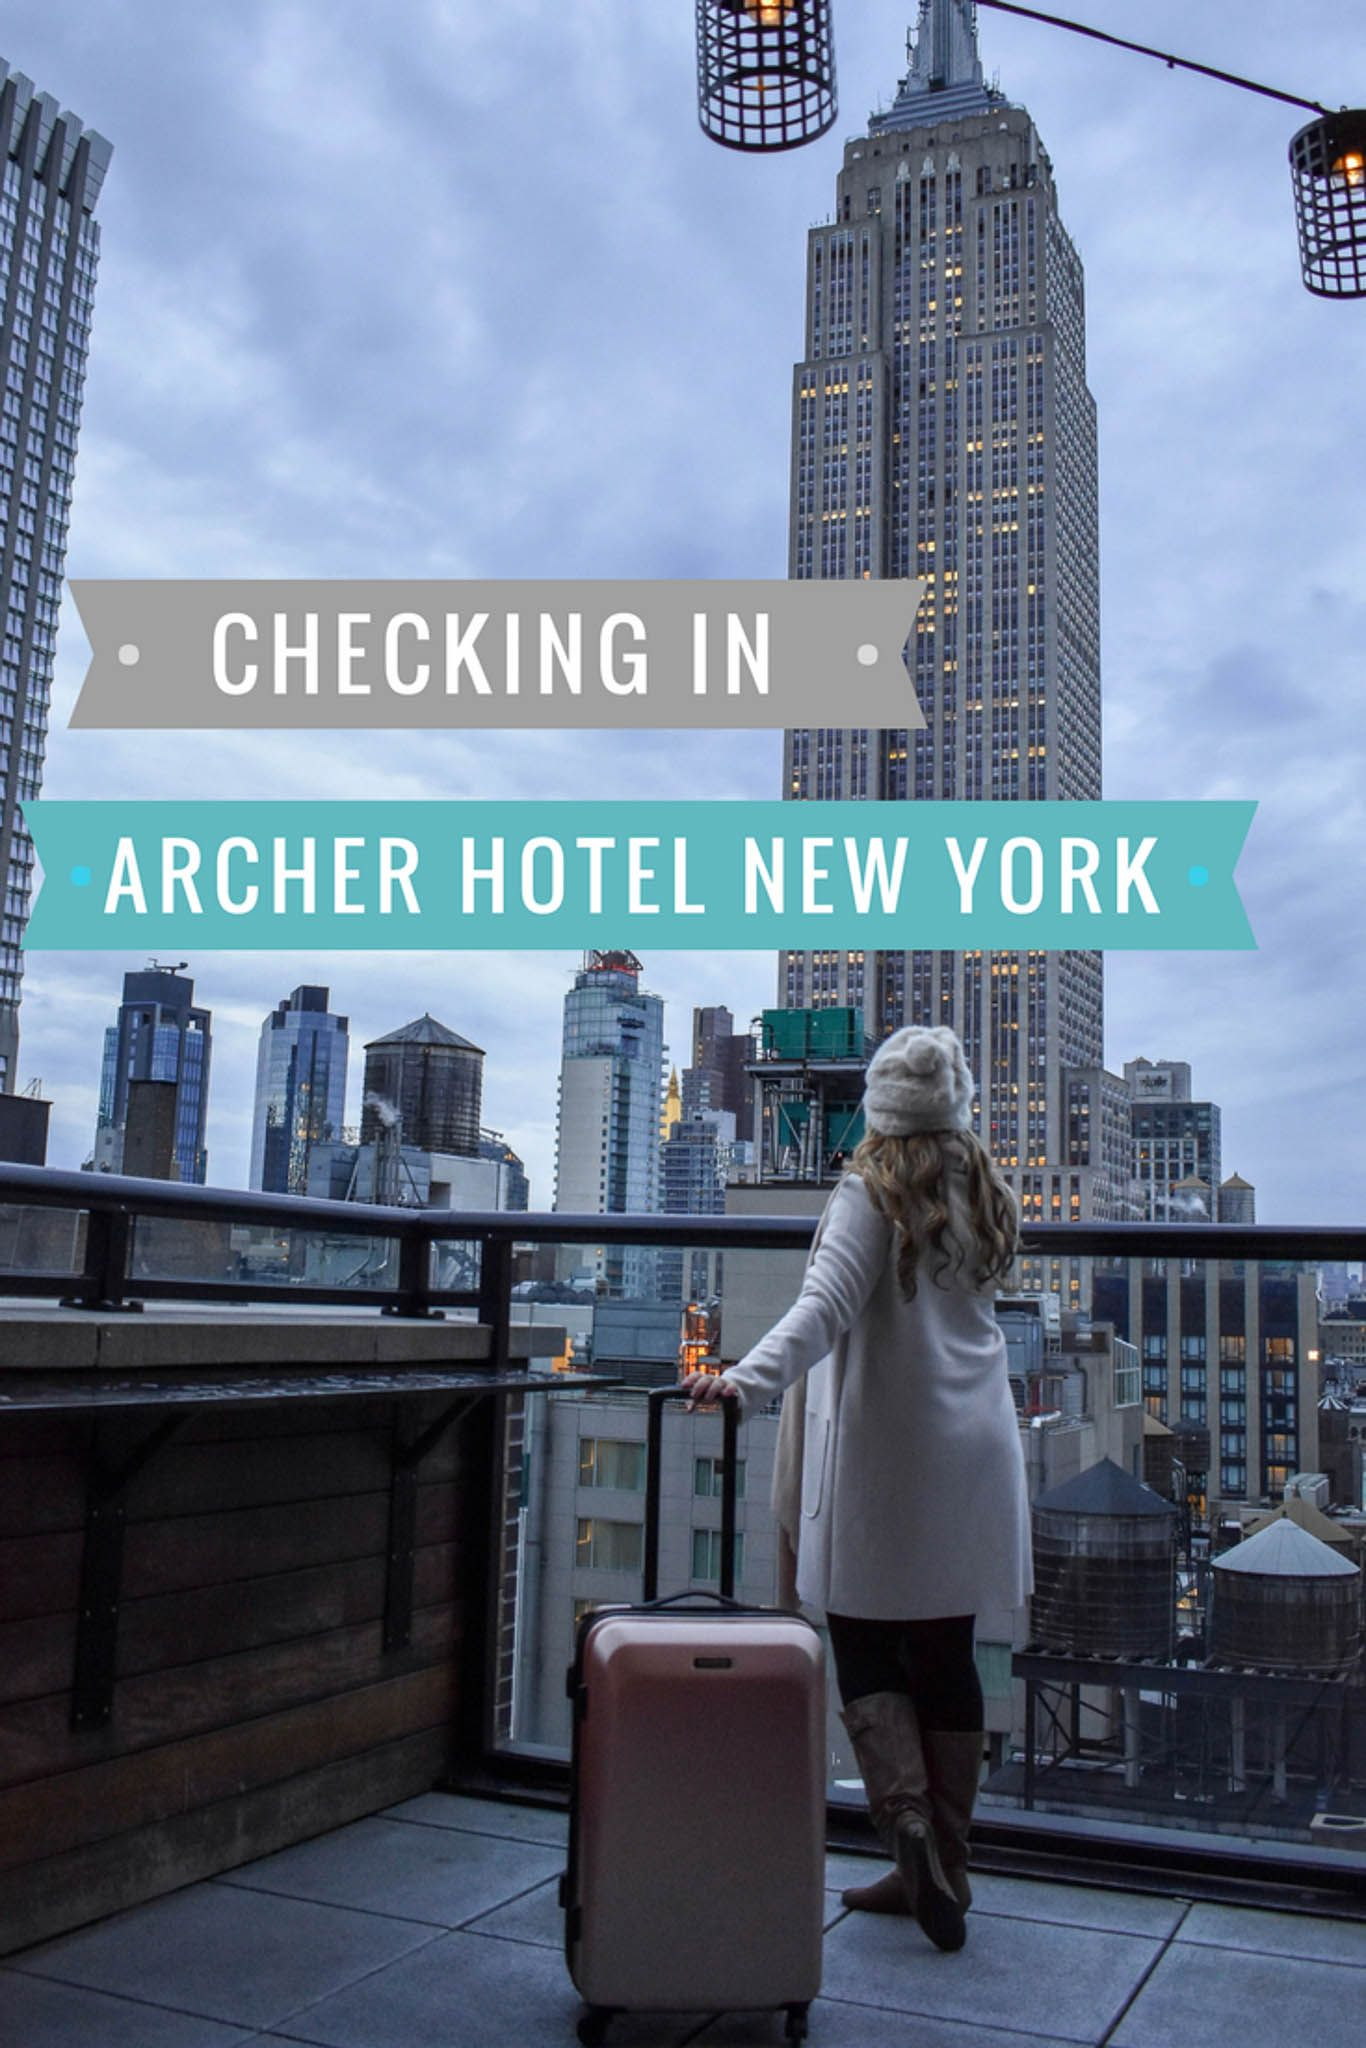 Verified Discount Voucher Code New York Hotel 2020